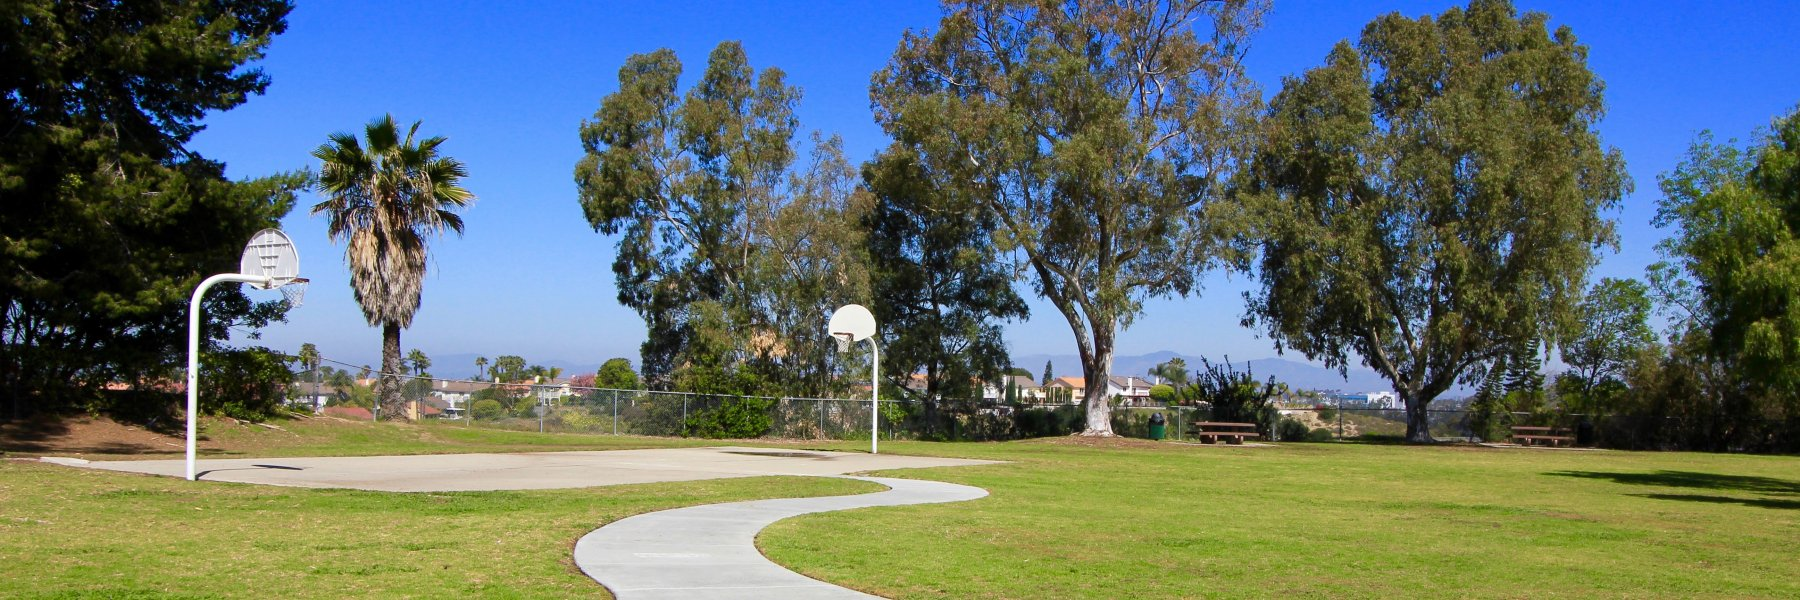 Mira Costa is a community of homes in Oceanside California